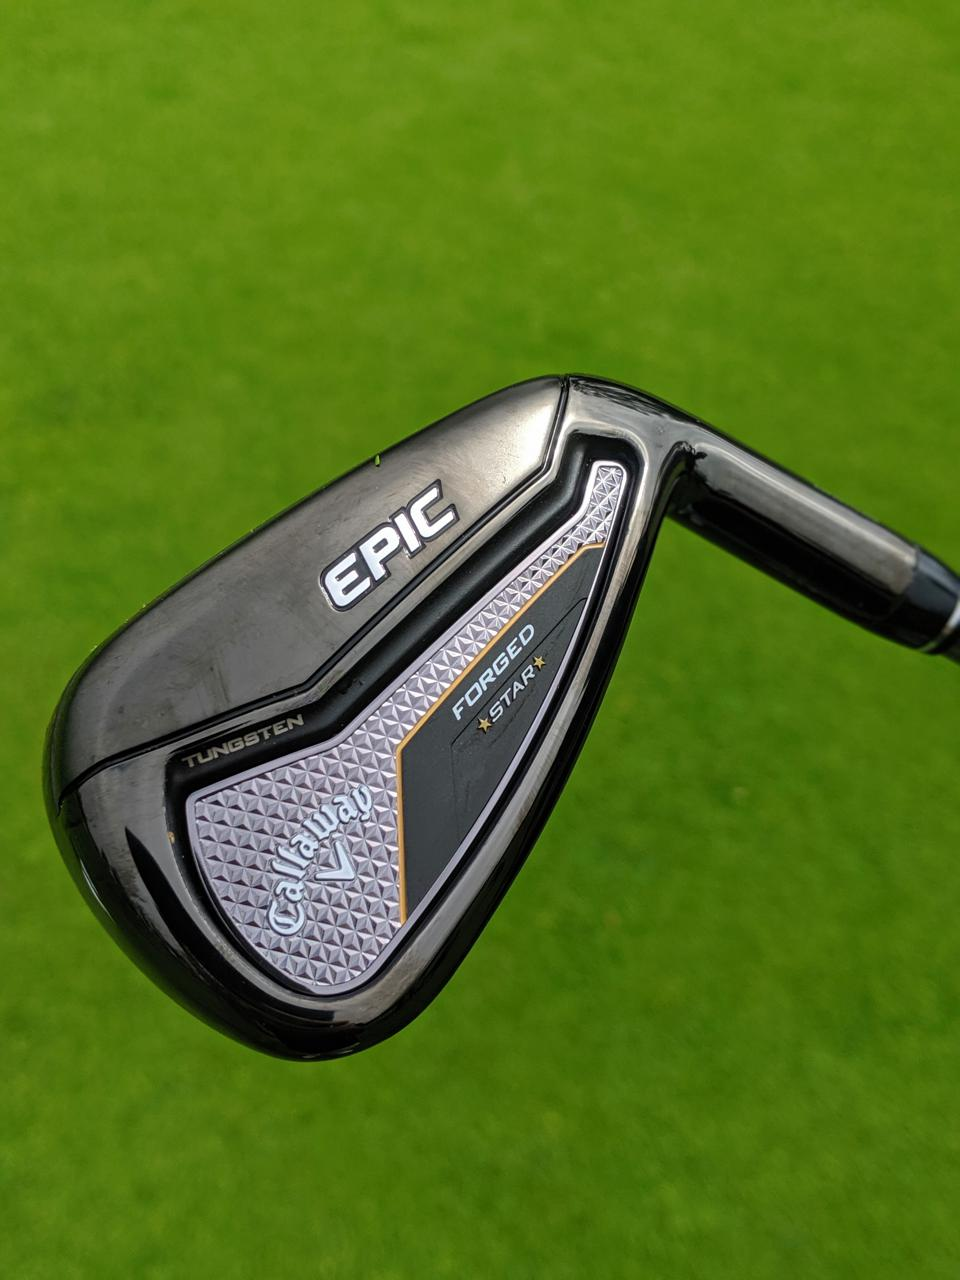 Callaway Epic Forged Star iron